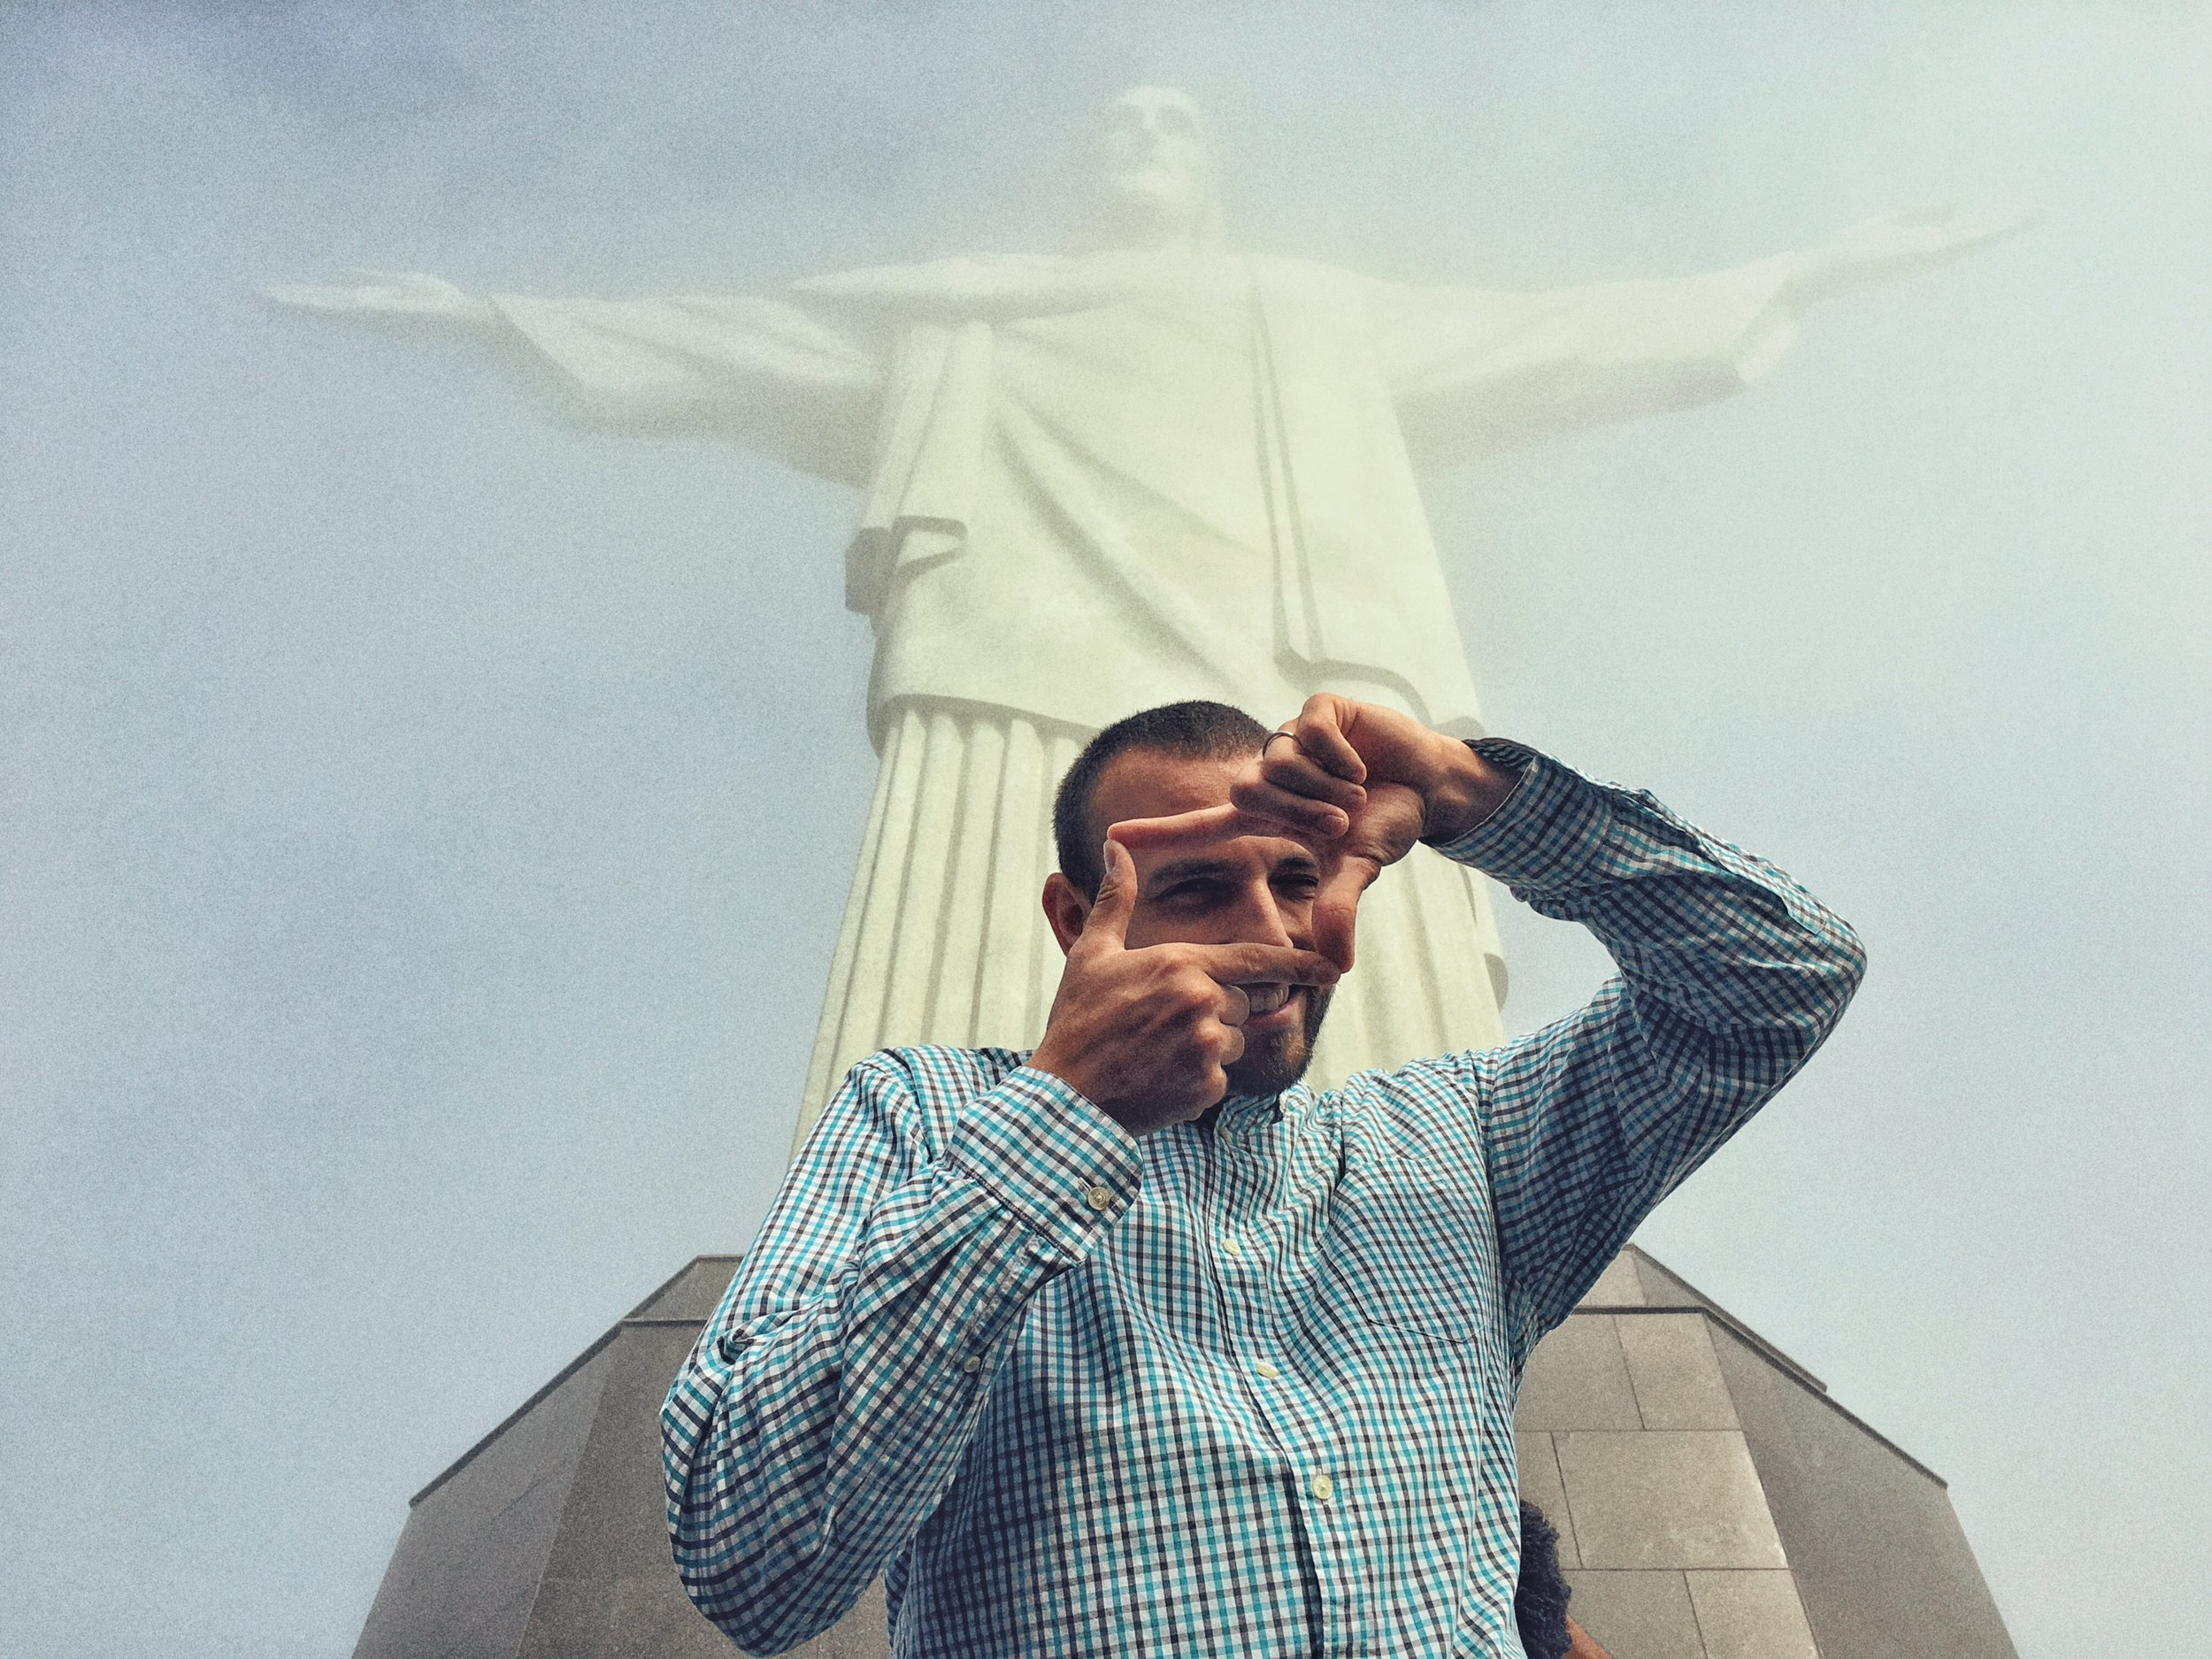 Visiting Christ the Redeemer was a spectacular experience. Photo by Milad Payami on my phone (Thanks bruh!)